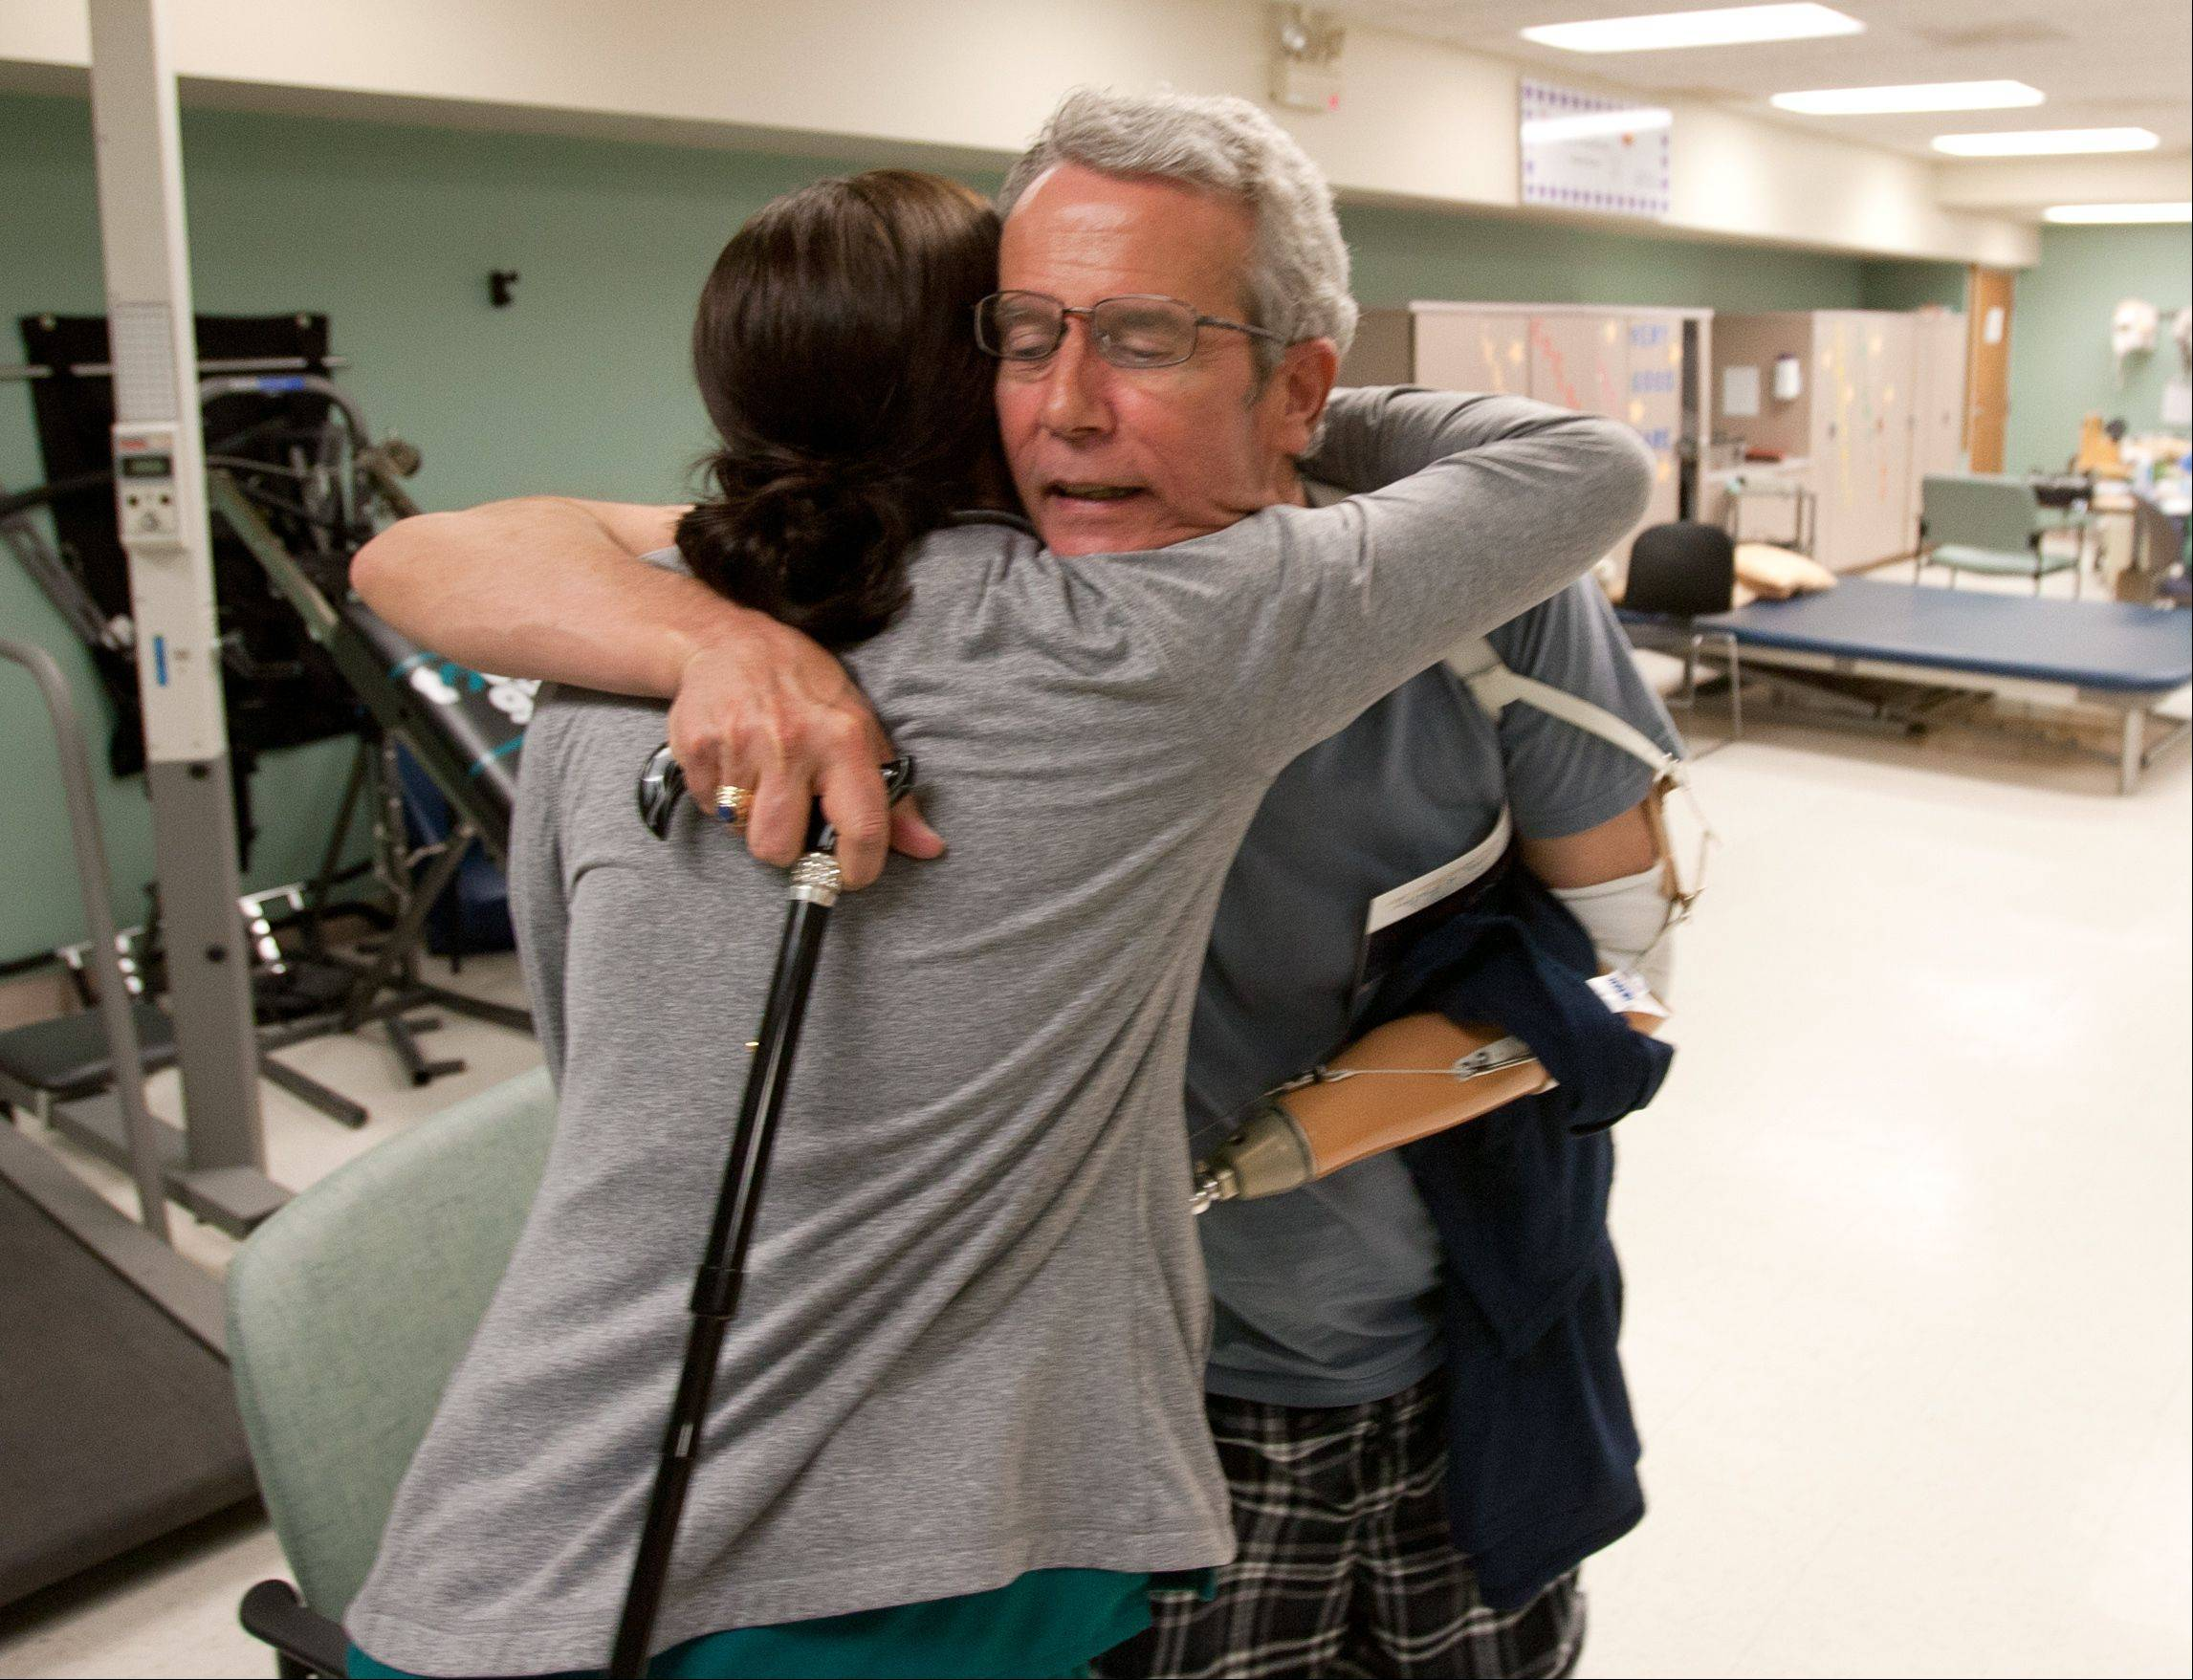 Carson gives a farewell hug to physical therapy student Erin Barry during his last session at the Advocate Christ Medical Center in Oak Lawn.